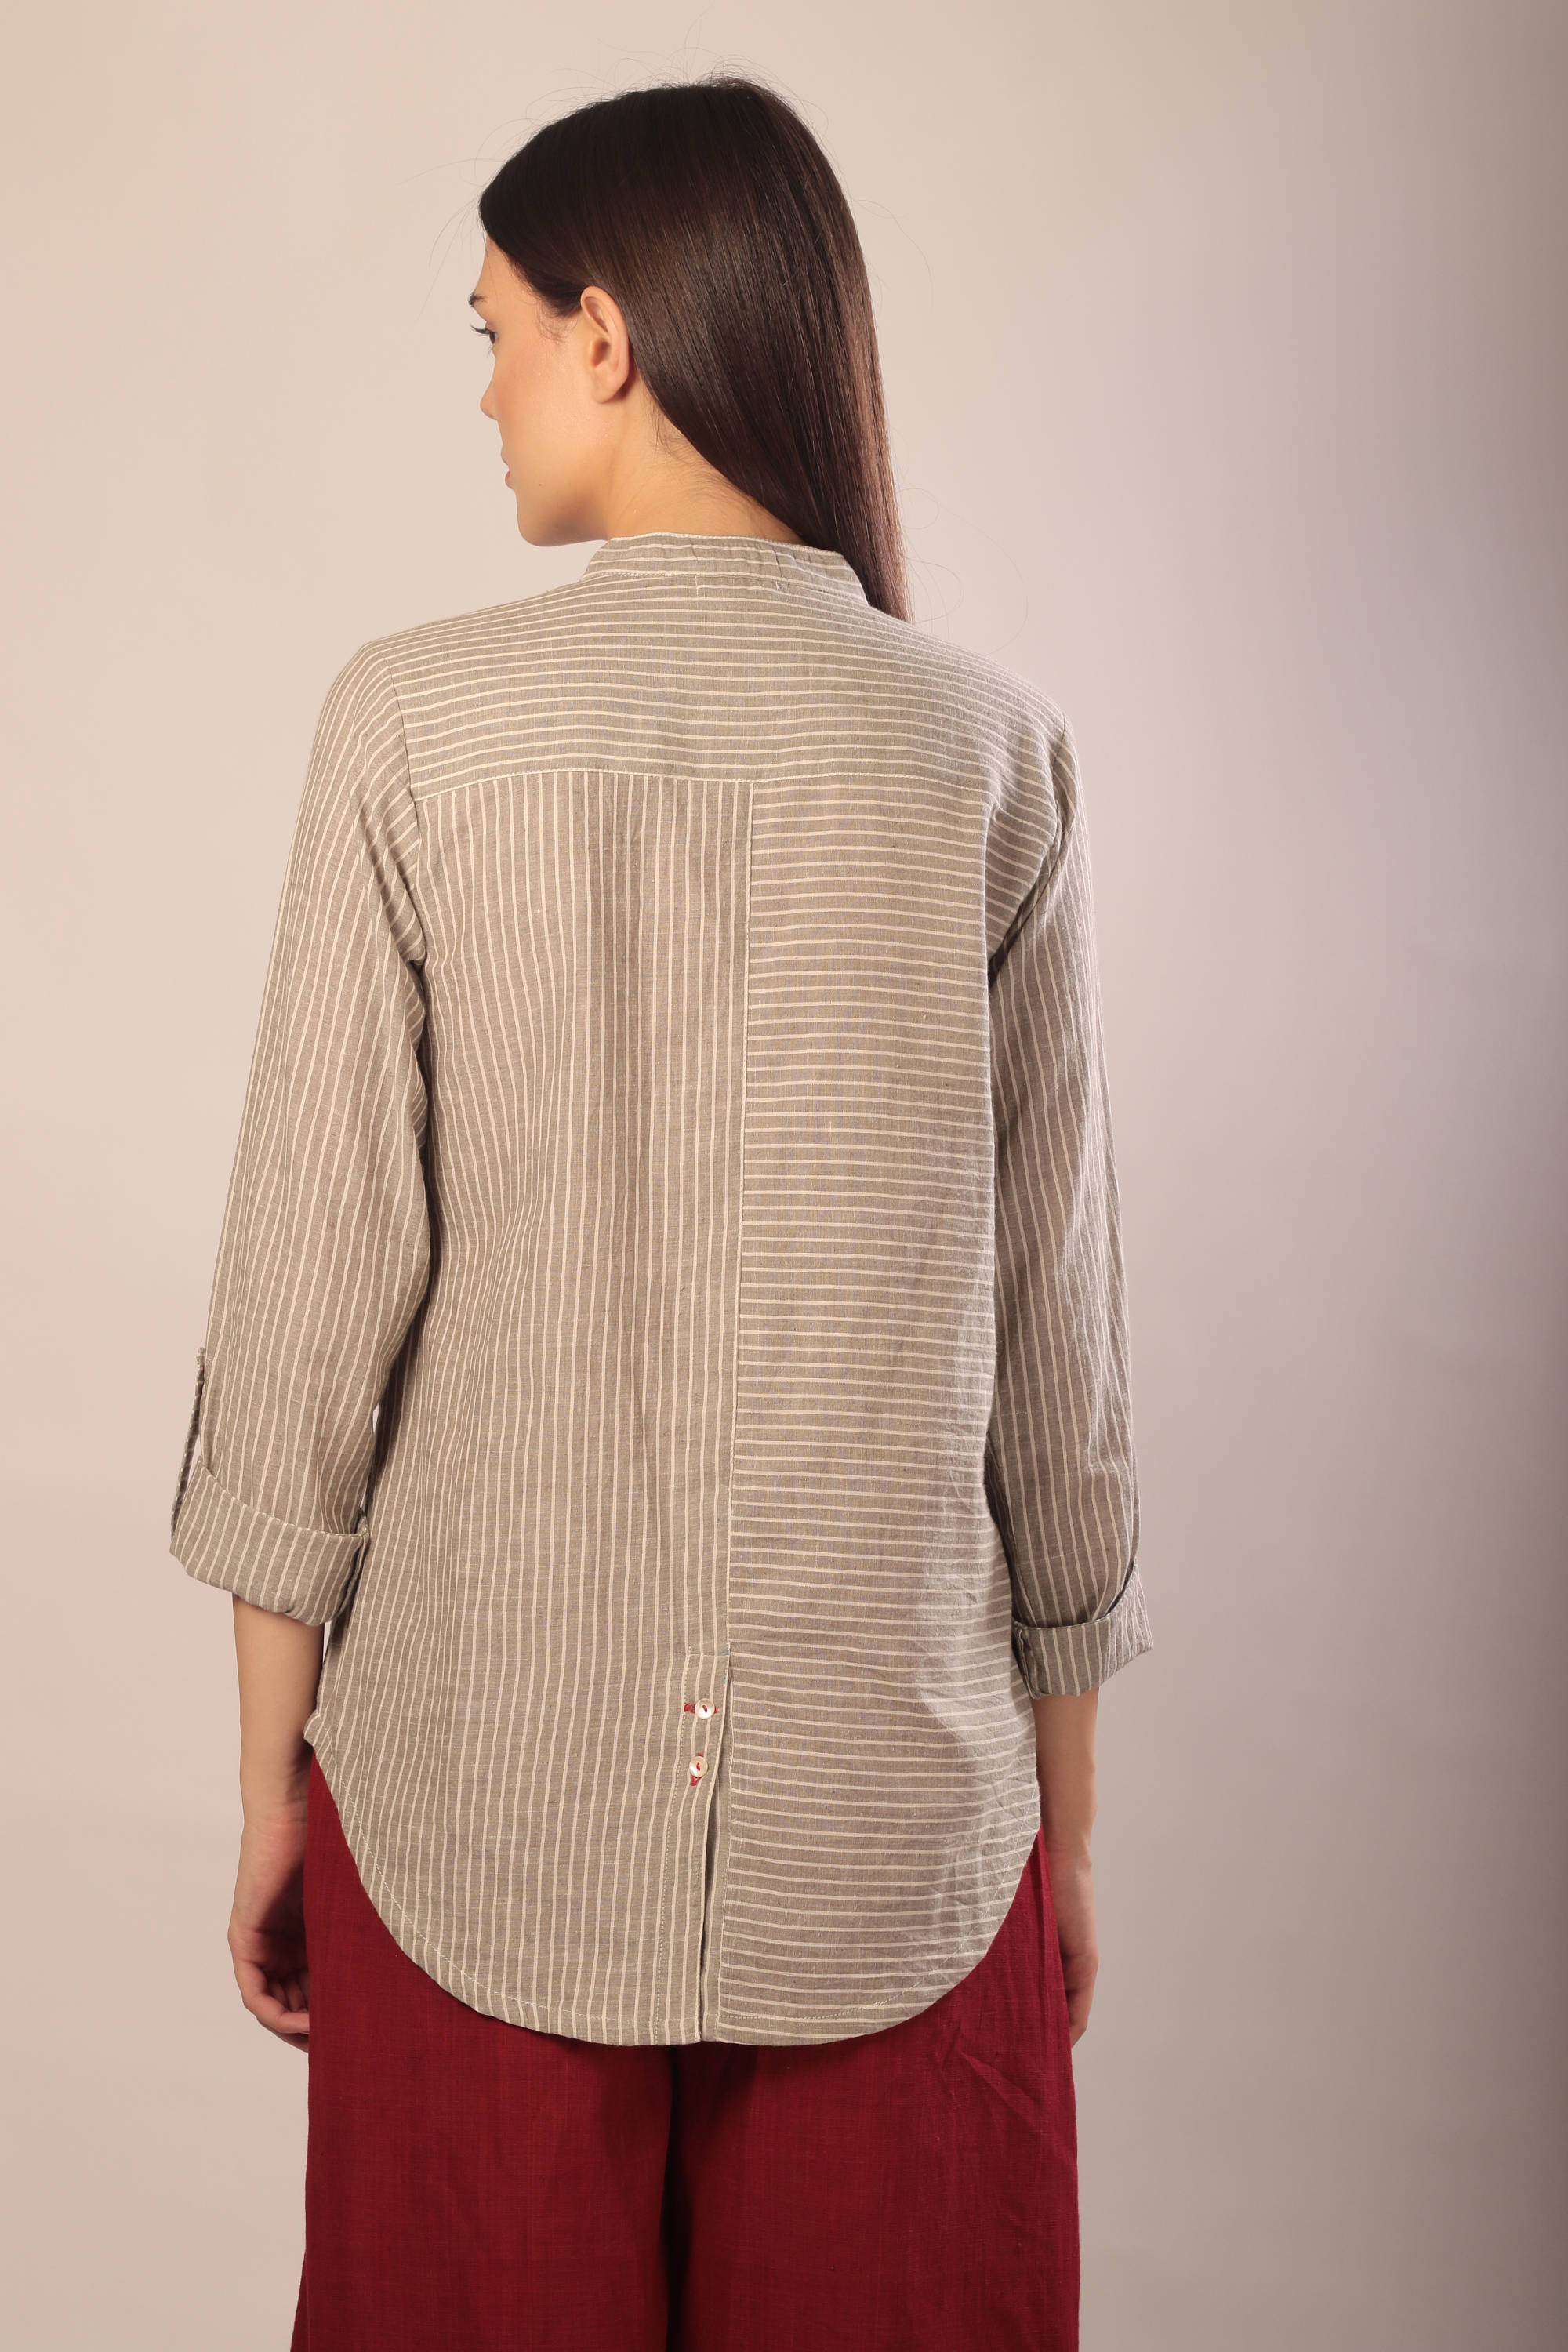 Sabah shirt in striped khadi cotton